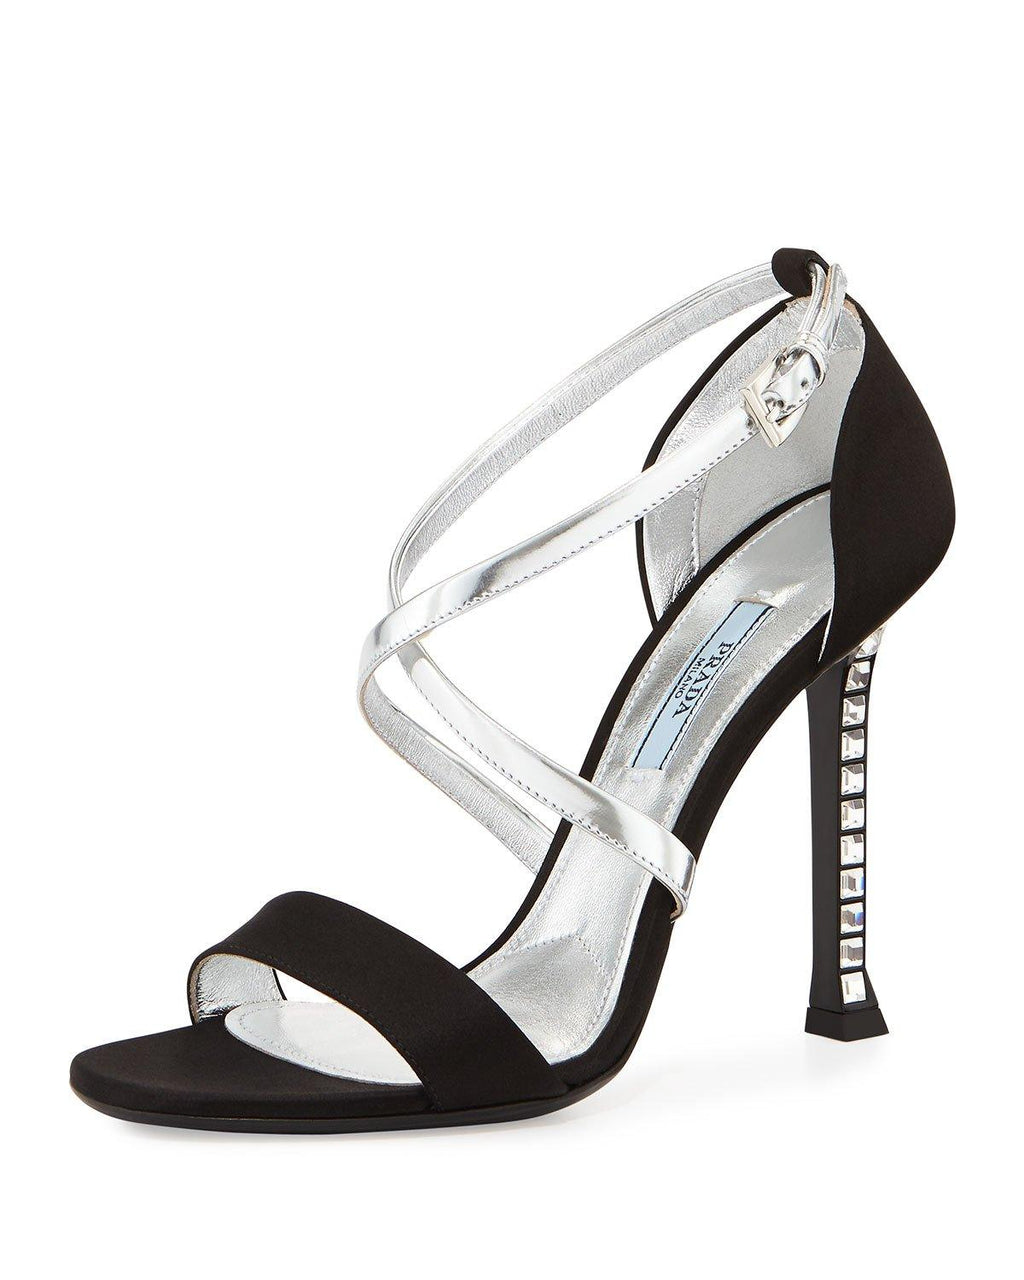 Prada Metallic Satin Crystal-Heel Pump